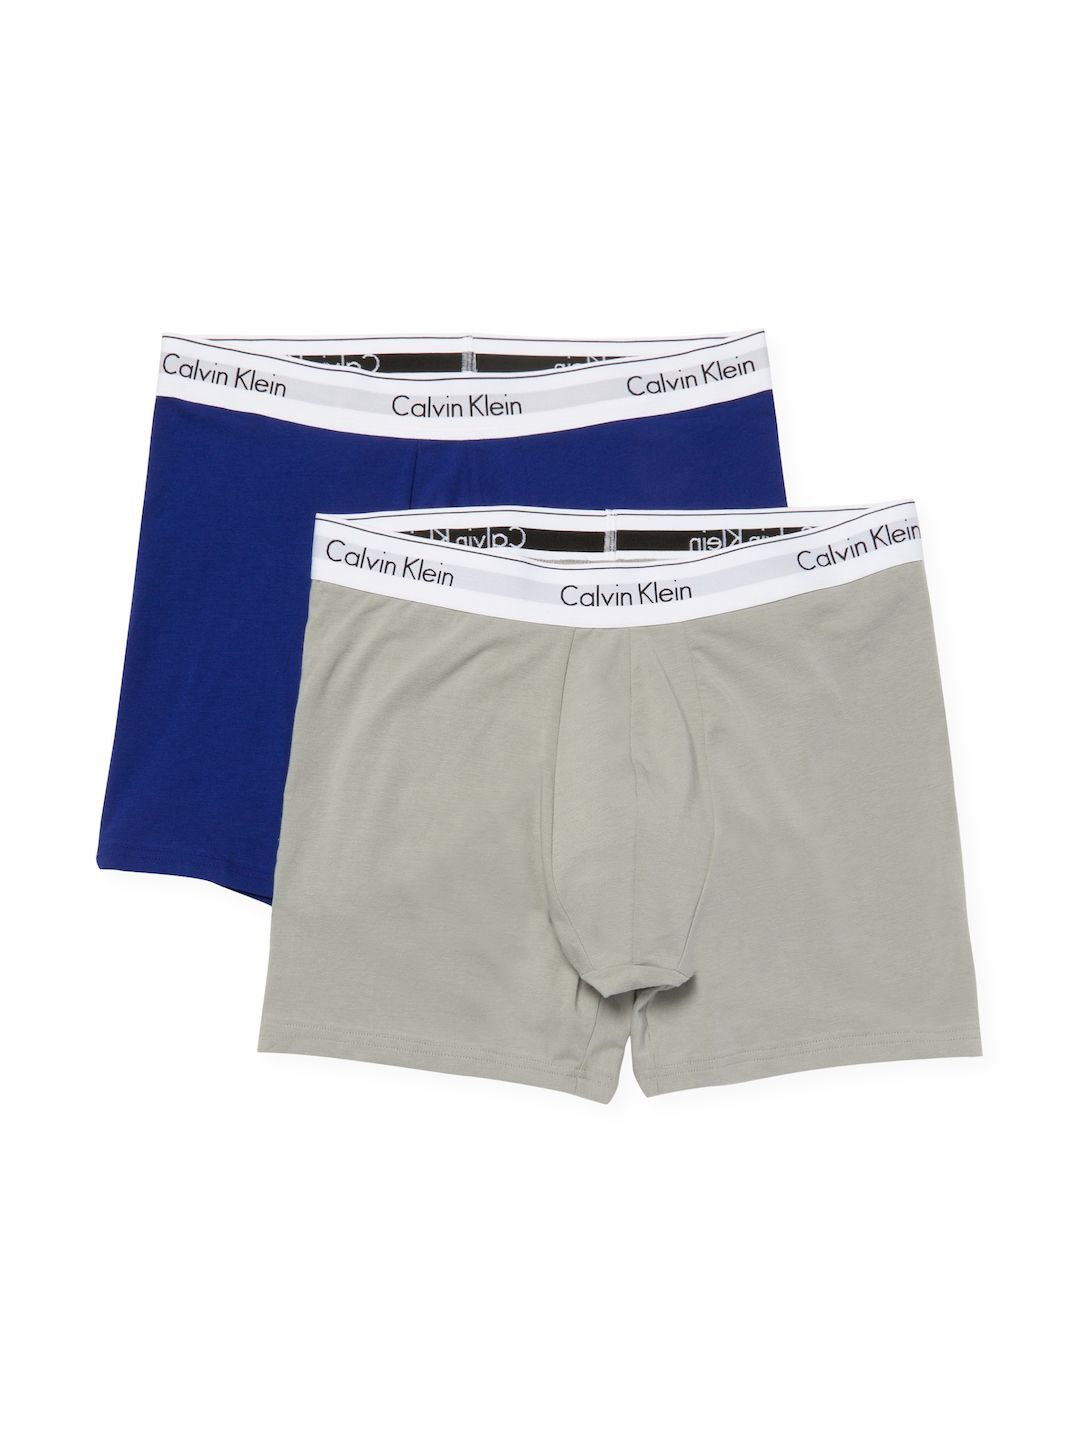 8ac6fd2836 CALVIN KLEIN UNDERWEAR MEN S MODERN STRETCH COTTON BOXER BRIEF TWO PACK -  SIZE L.  calvinkleinunderwear  cloth